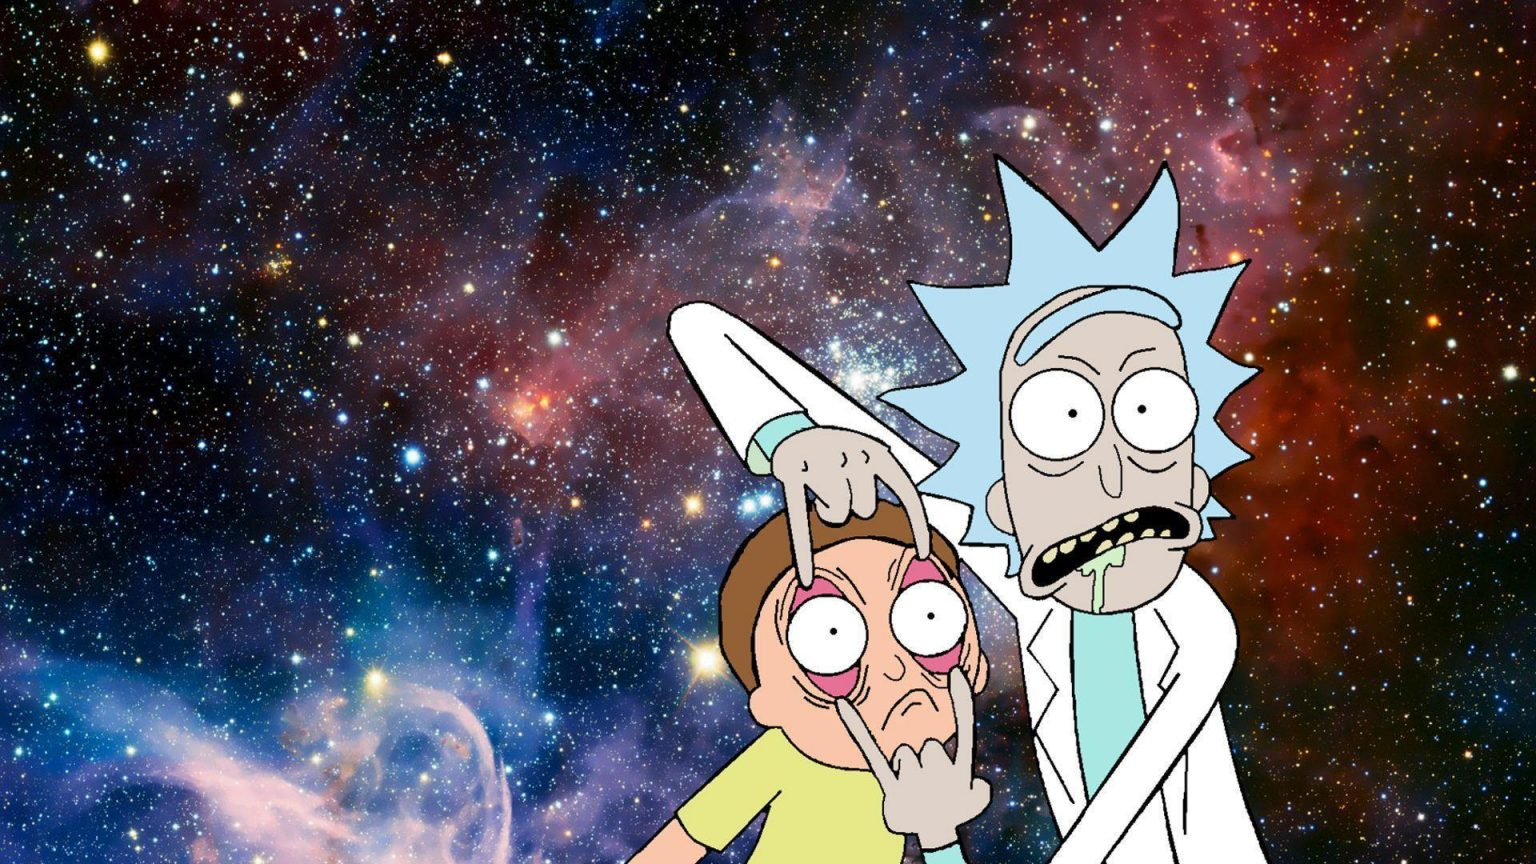 Rick And Morty Season 4 Episode 7 Release Date